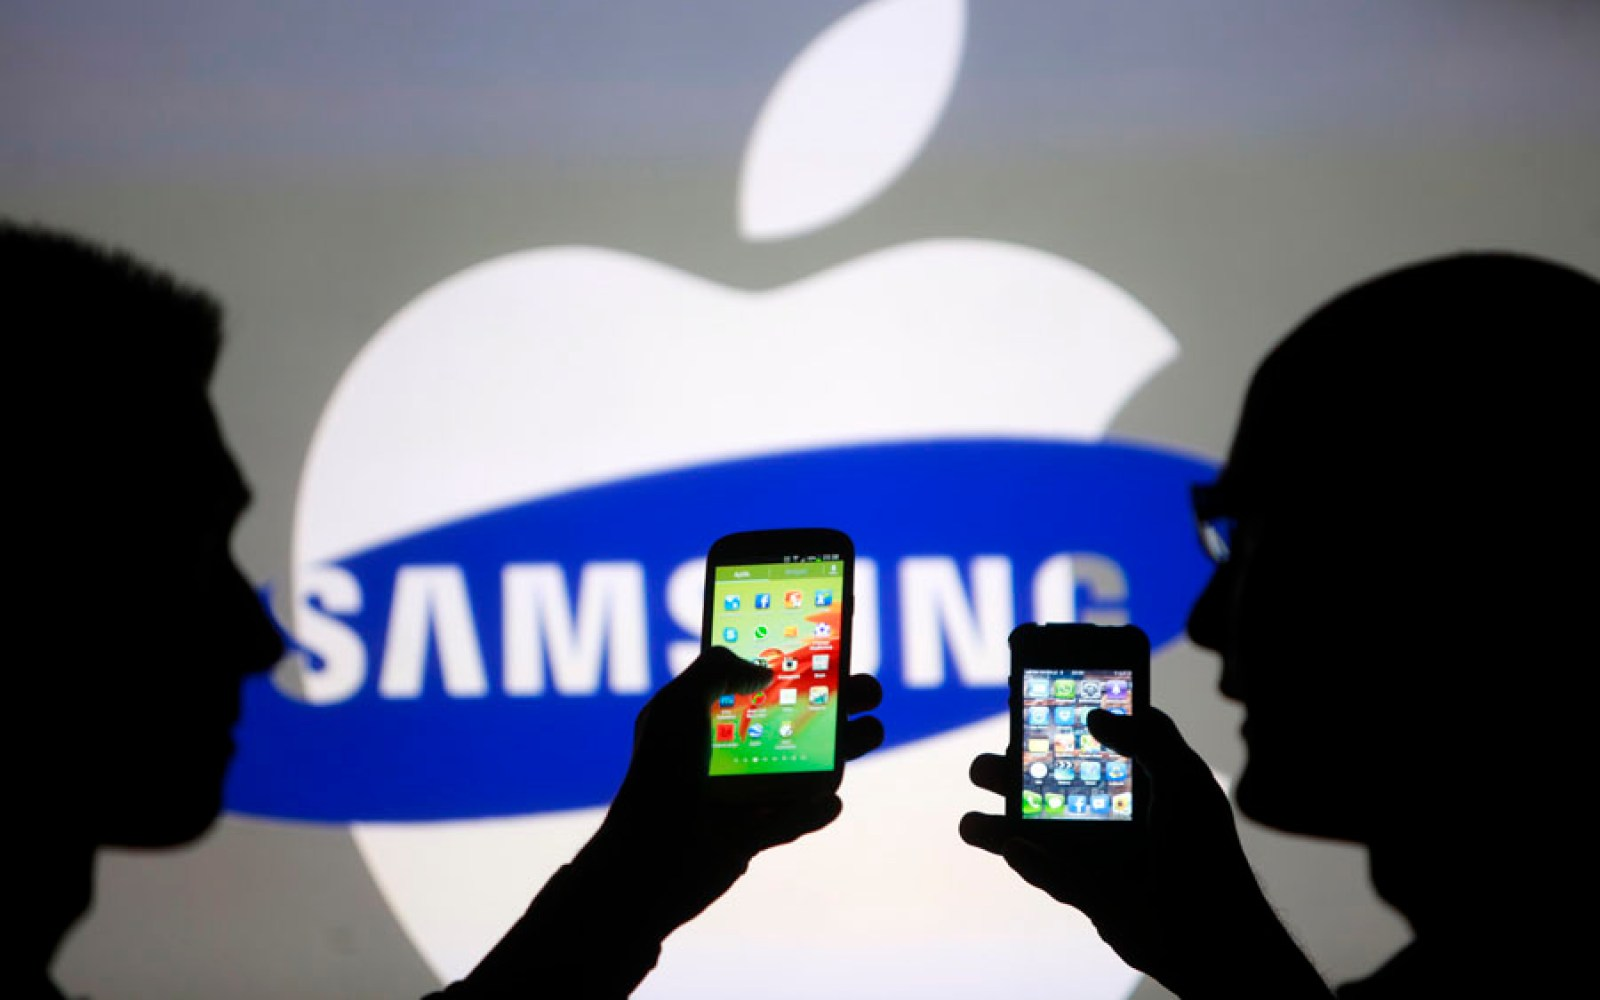 Apple wants to ban past and future Samsung devices from being sold in the US